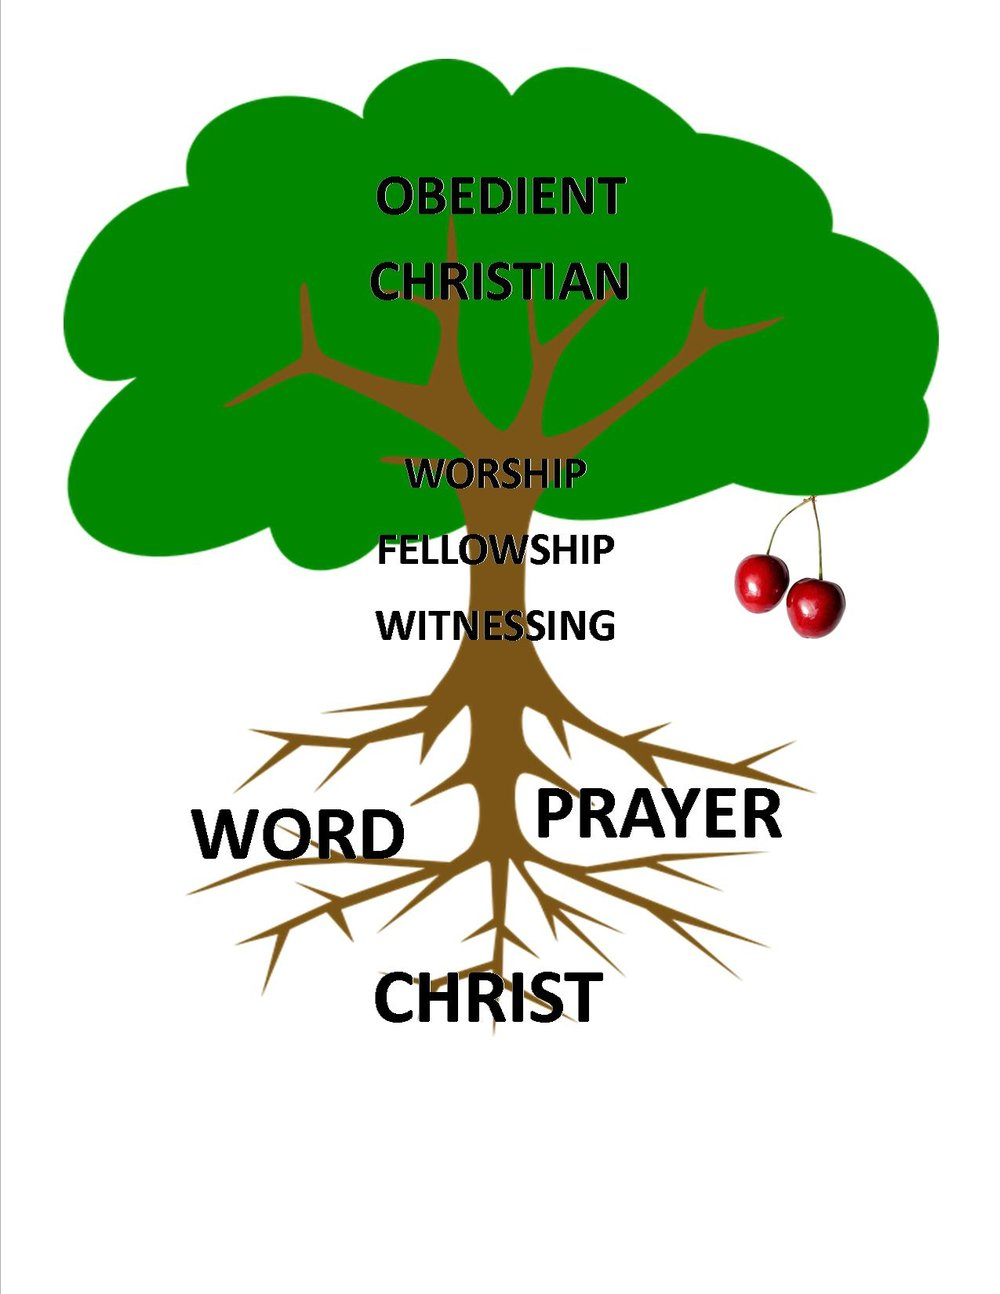 Rooted in Christ, fed by the Word and prayer, and supported by worship, fellowship, and witnessing, the Christian disciple naturally produces fruit as a result of the life flowing out of him/her.